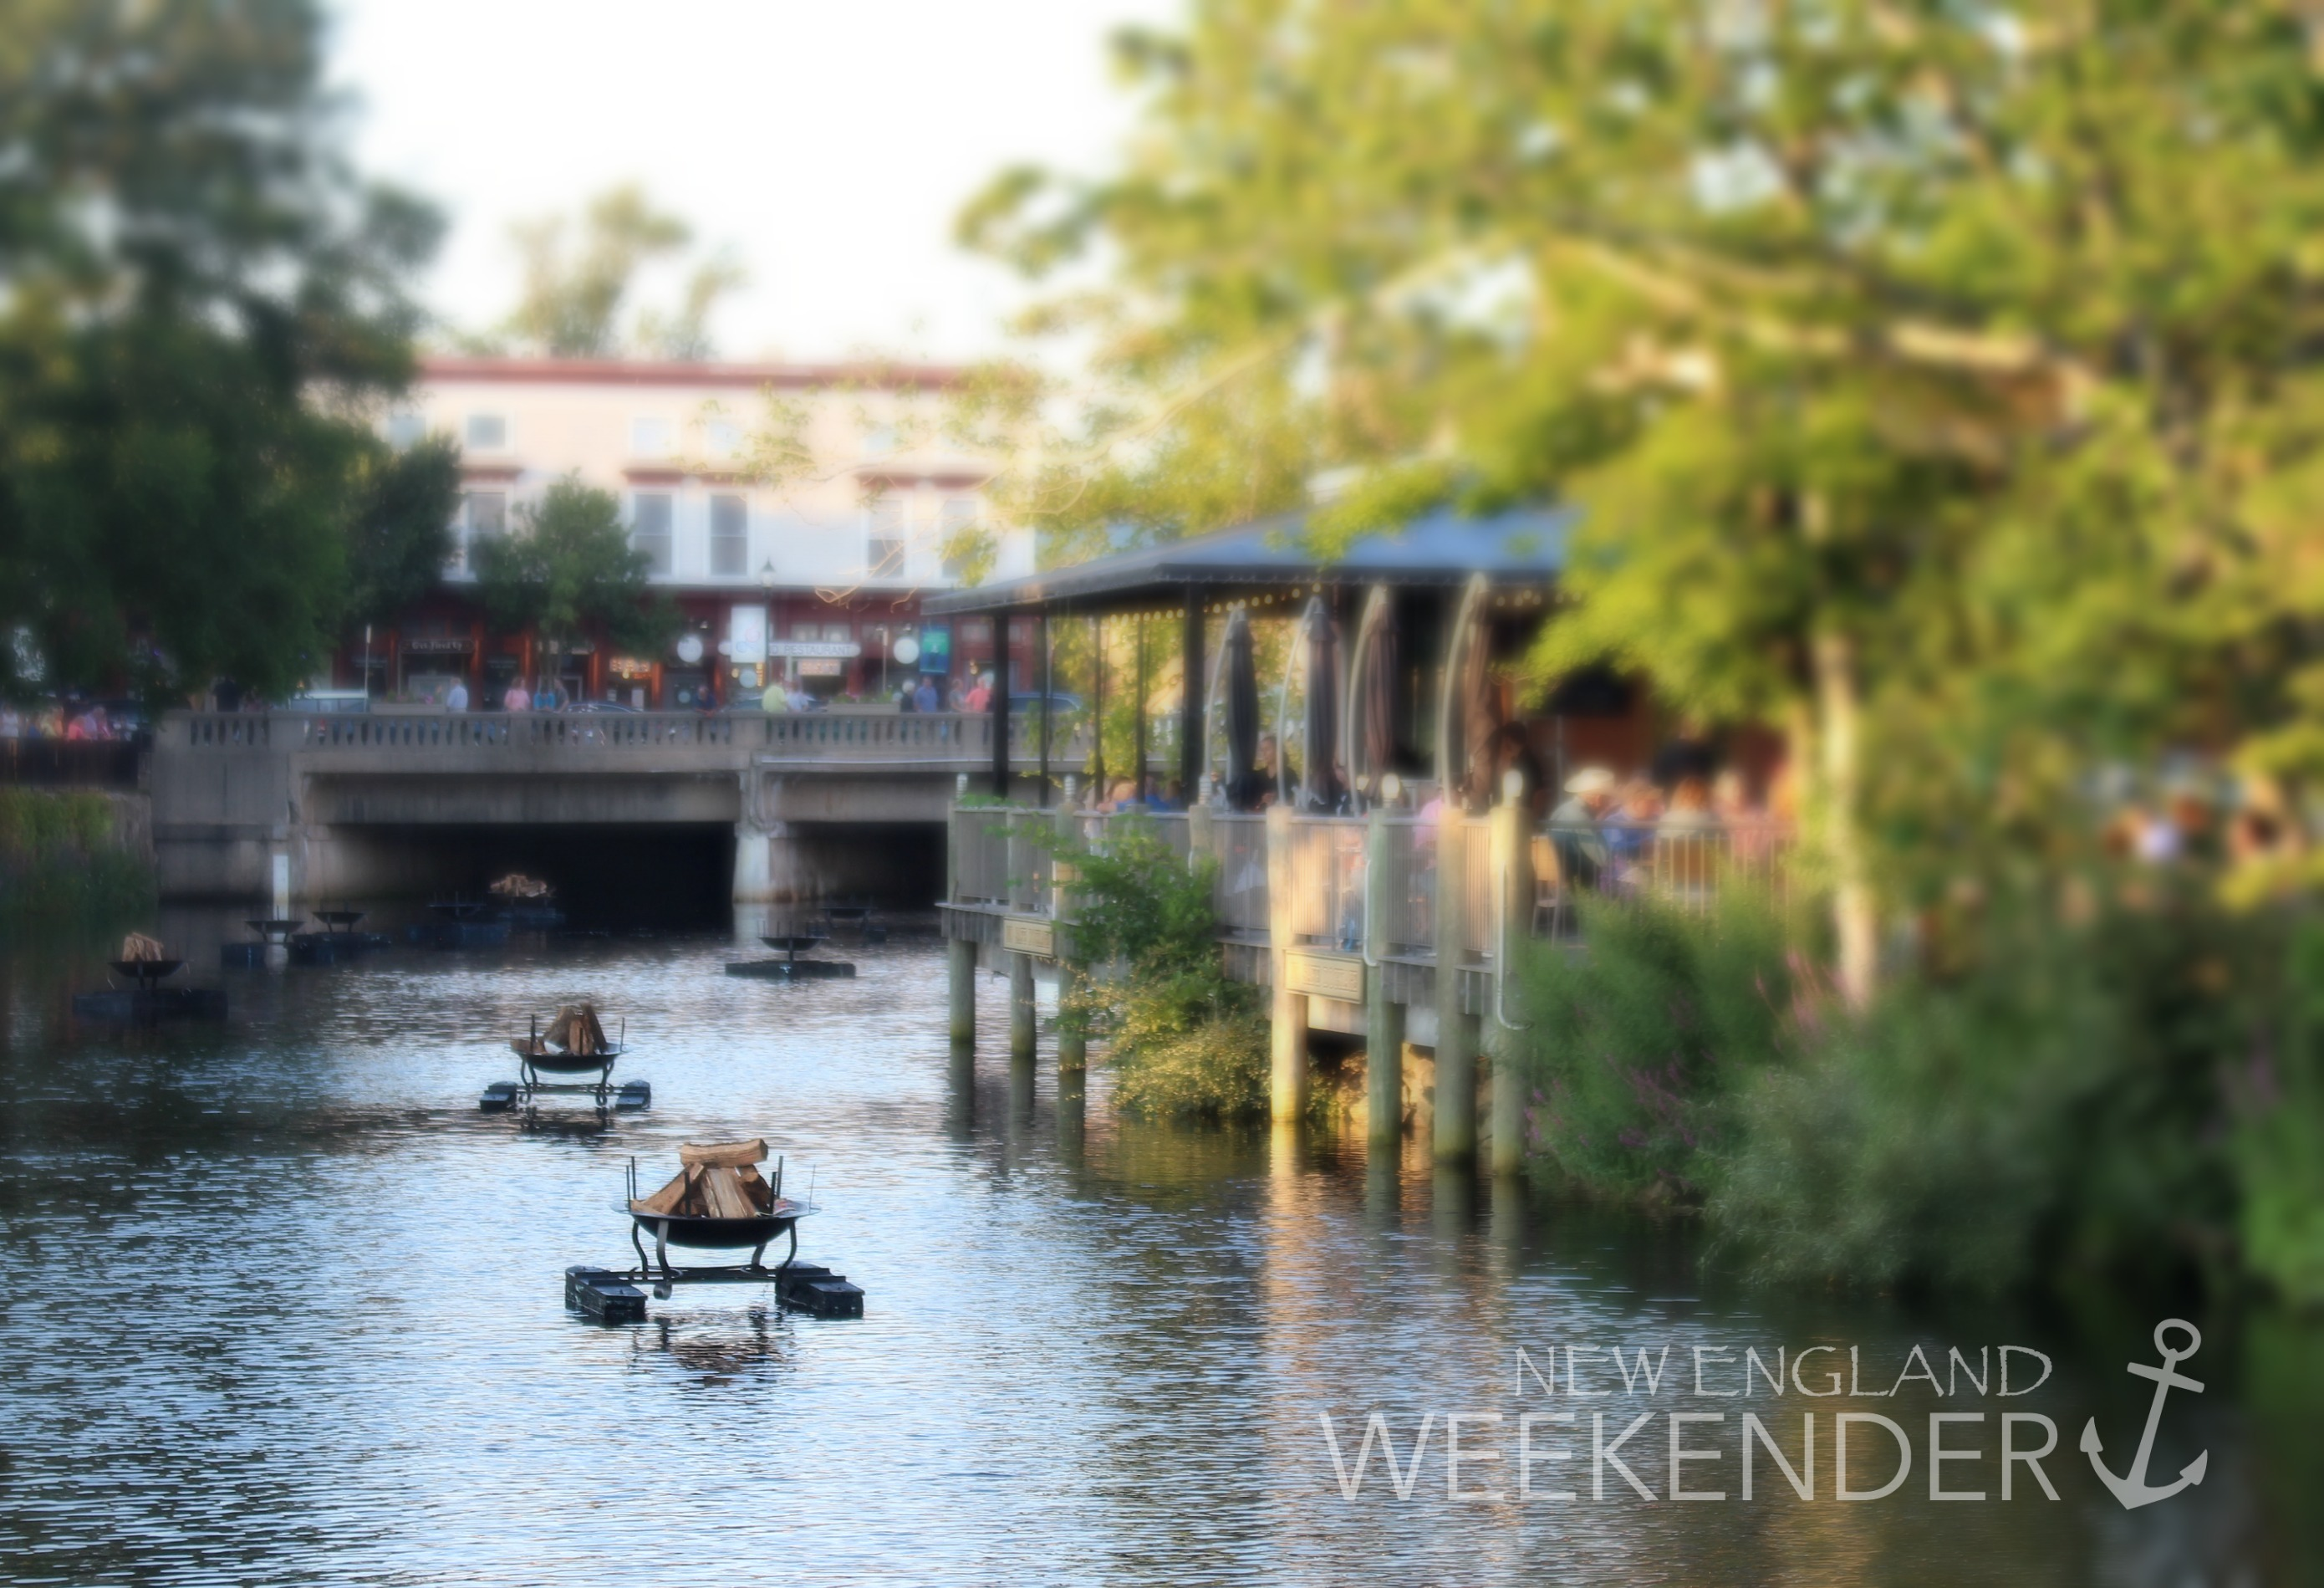 River Glow Festival, Westerly RI, New England Weekender